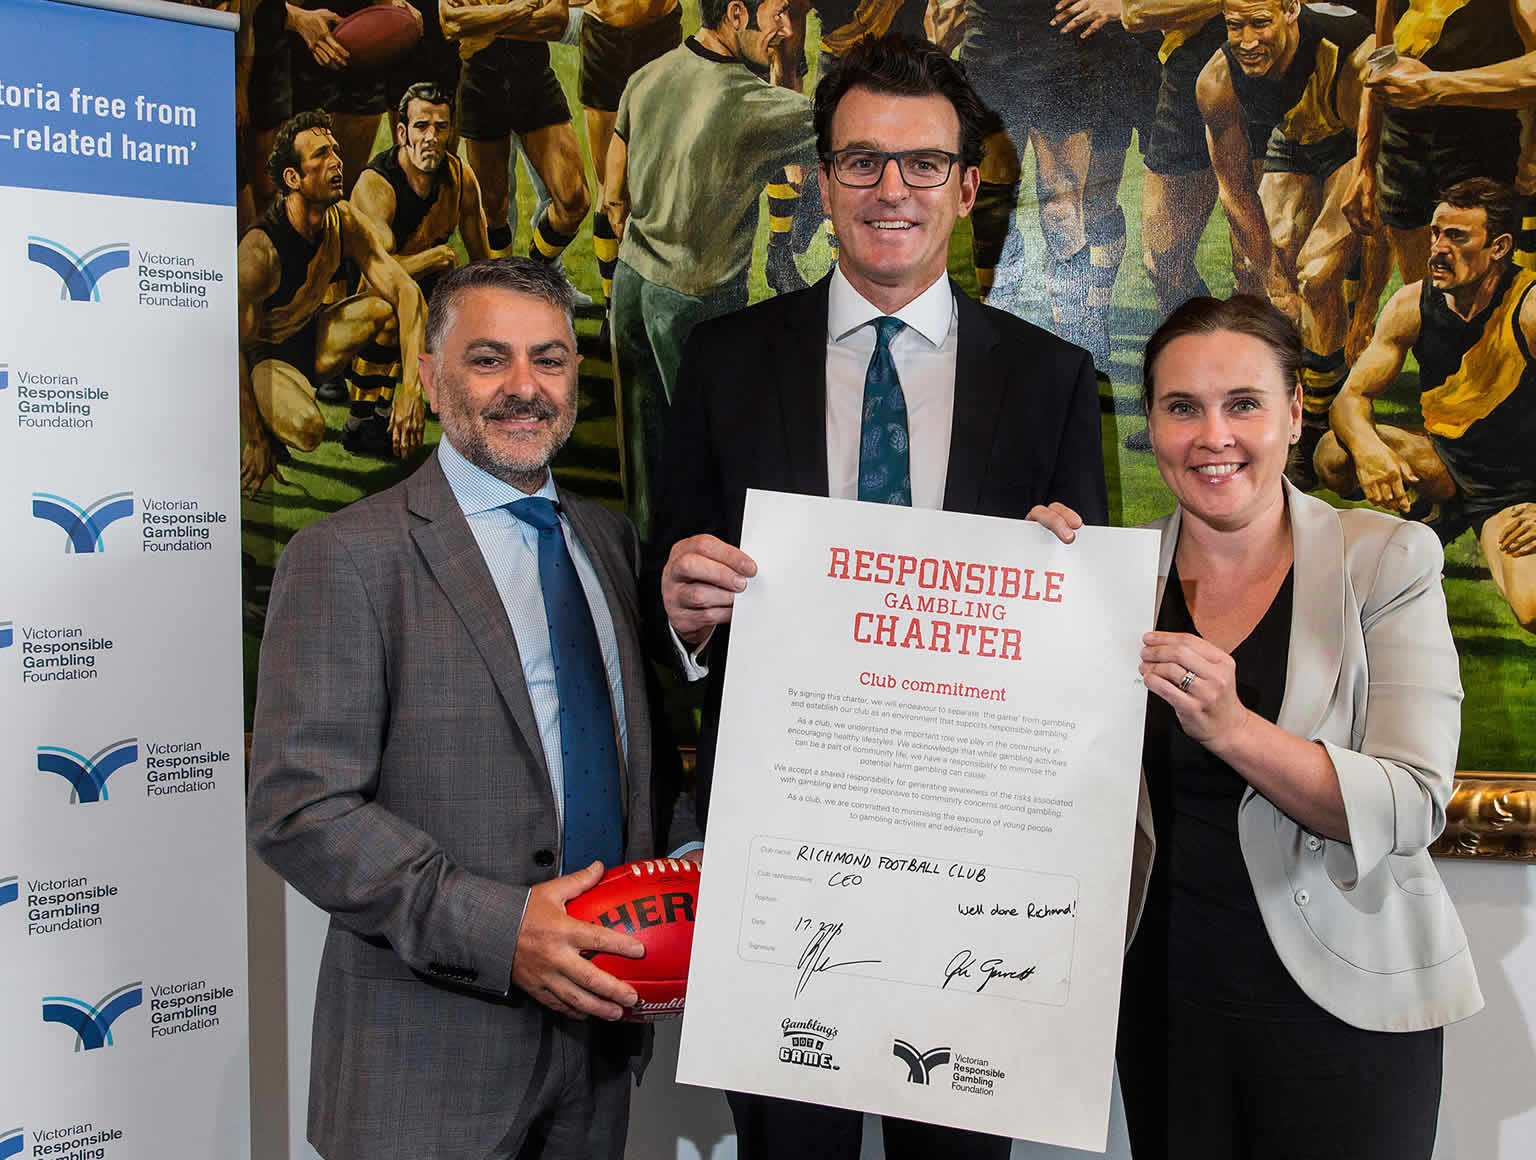 Victorian Responsible Gambling Foundation CEO Serge Sardo, Richmond CEO Brendon Gale and Minister for Gaming and Liquor Regulation Jane Garrett hold a signed Responsible Gambling Charter standing in front of painting of Richmond players.